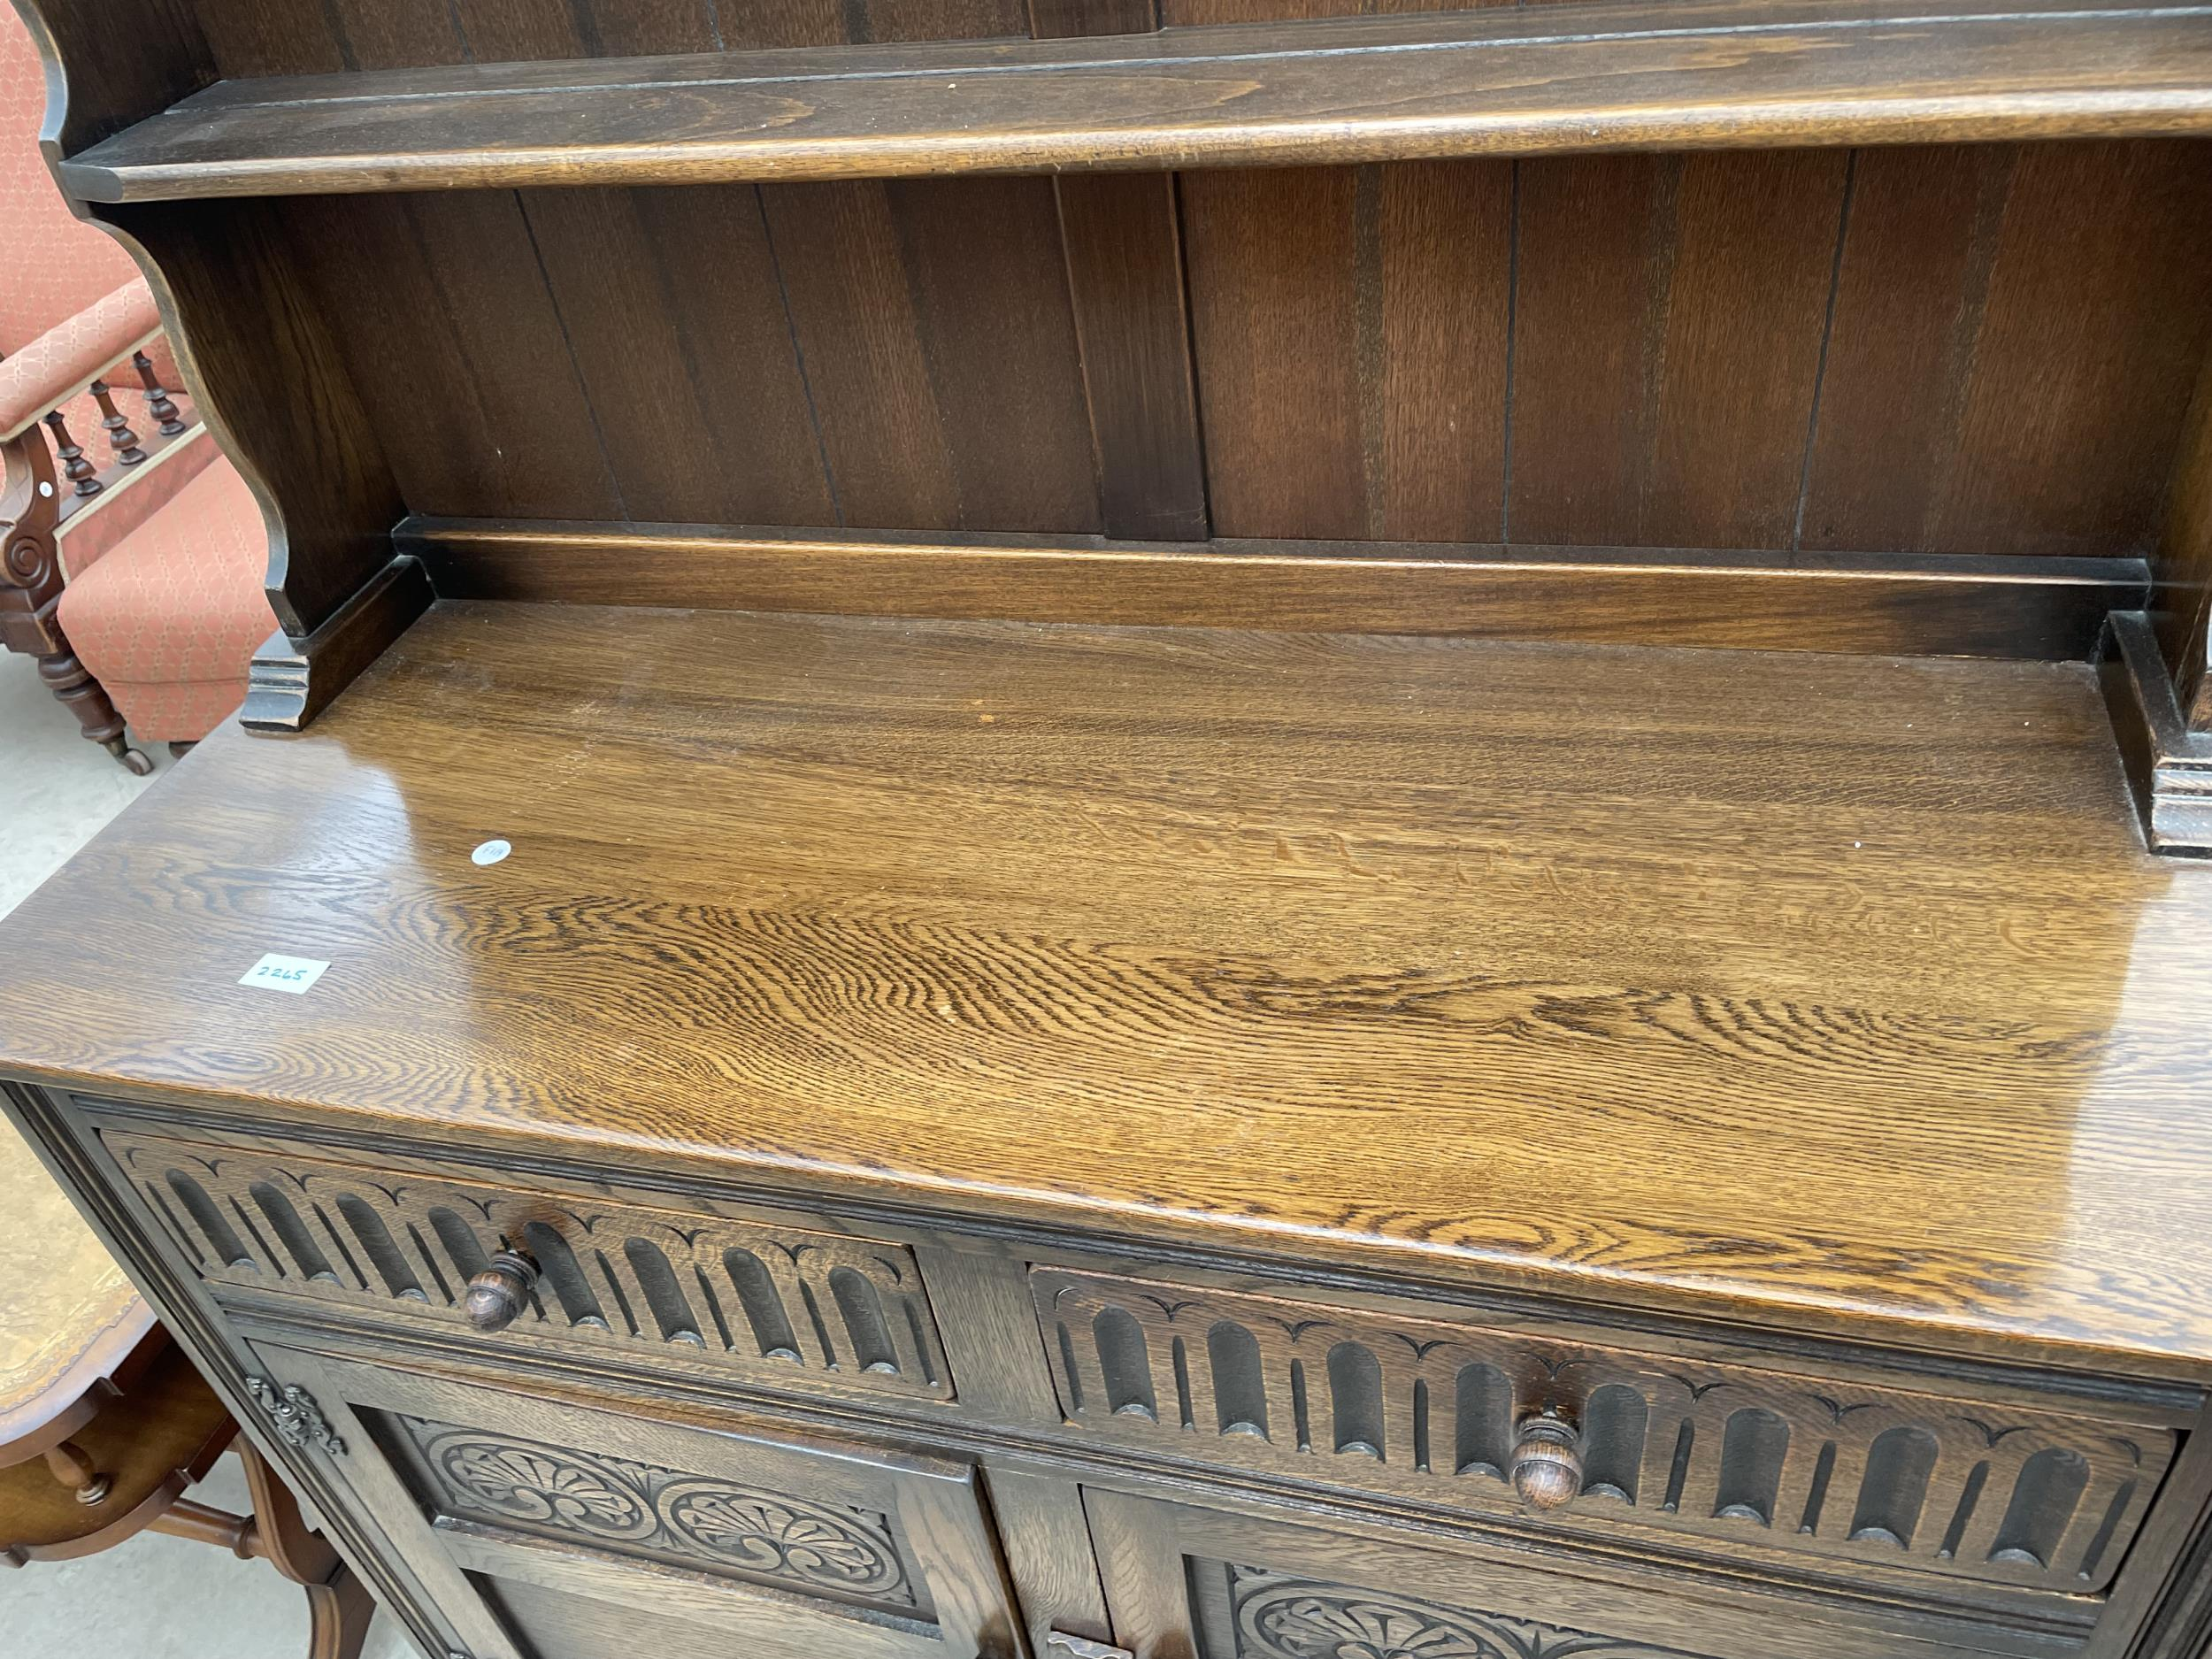 """AN OAK OLD CHARM STYLE DRESSER WITH PLATE RACK 42"""" WIDE - Image 3 of 4"""